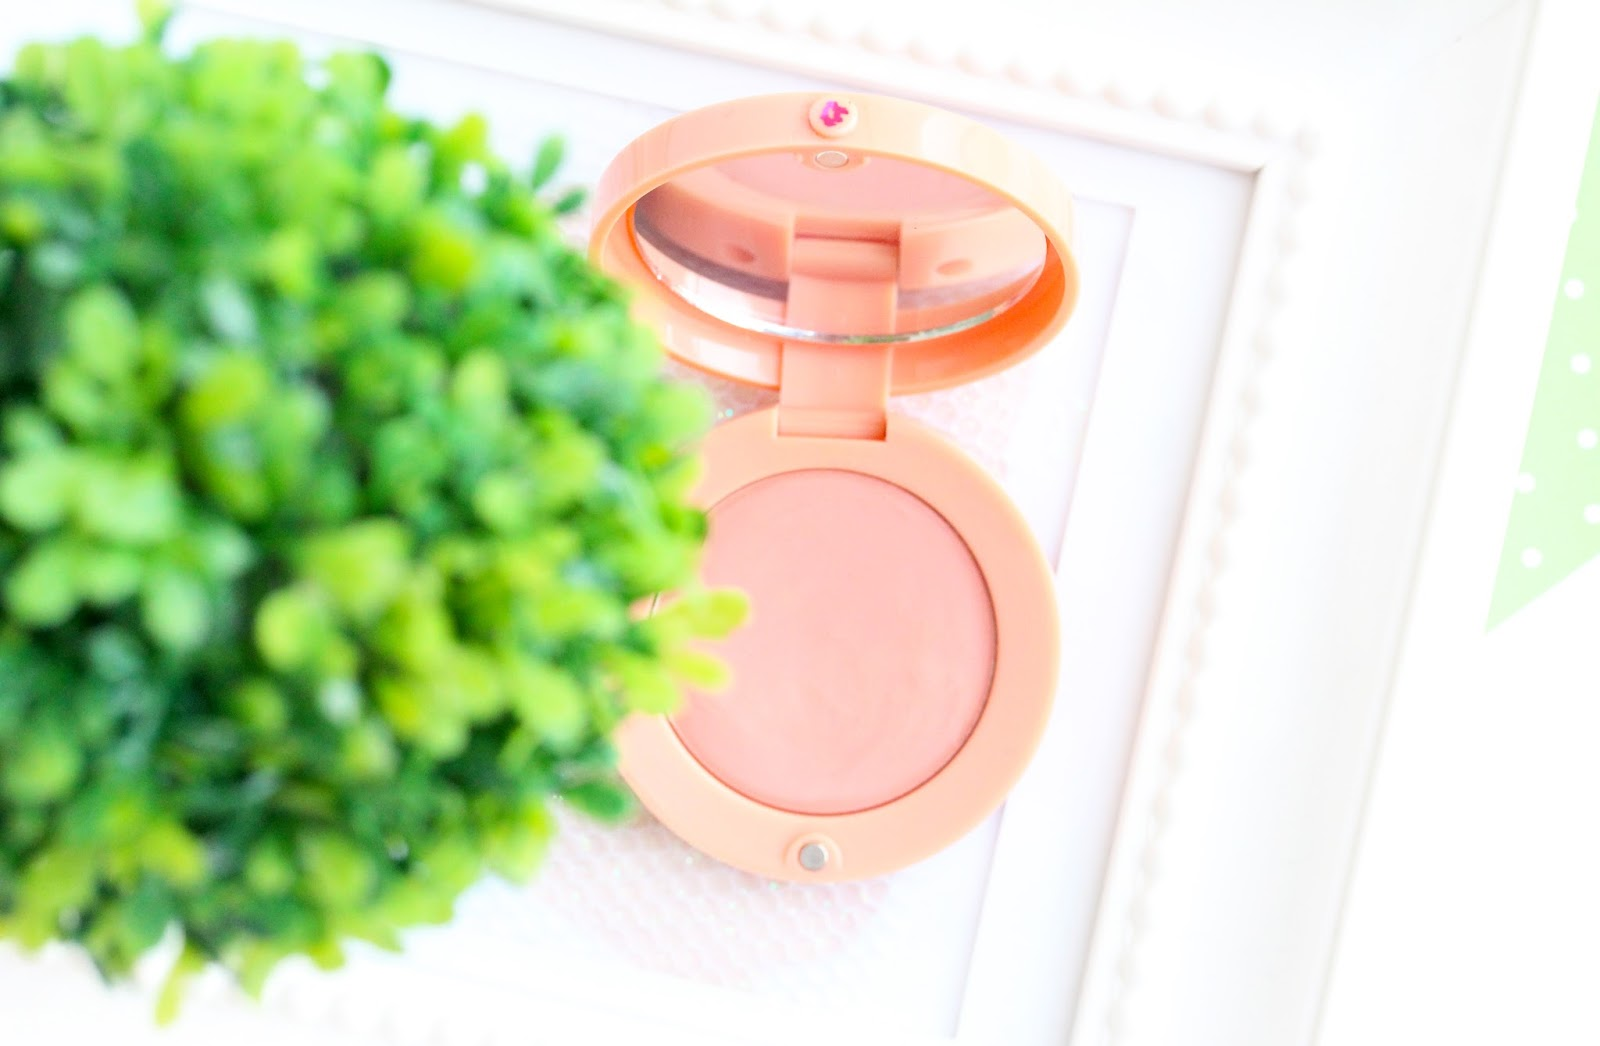 bourgeois cream blush in 01 nude velvet